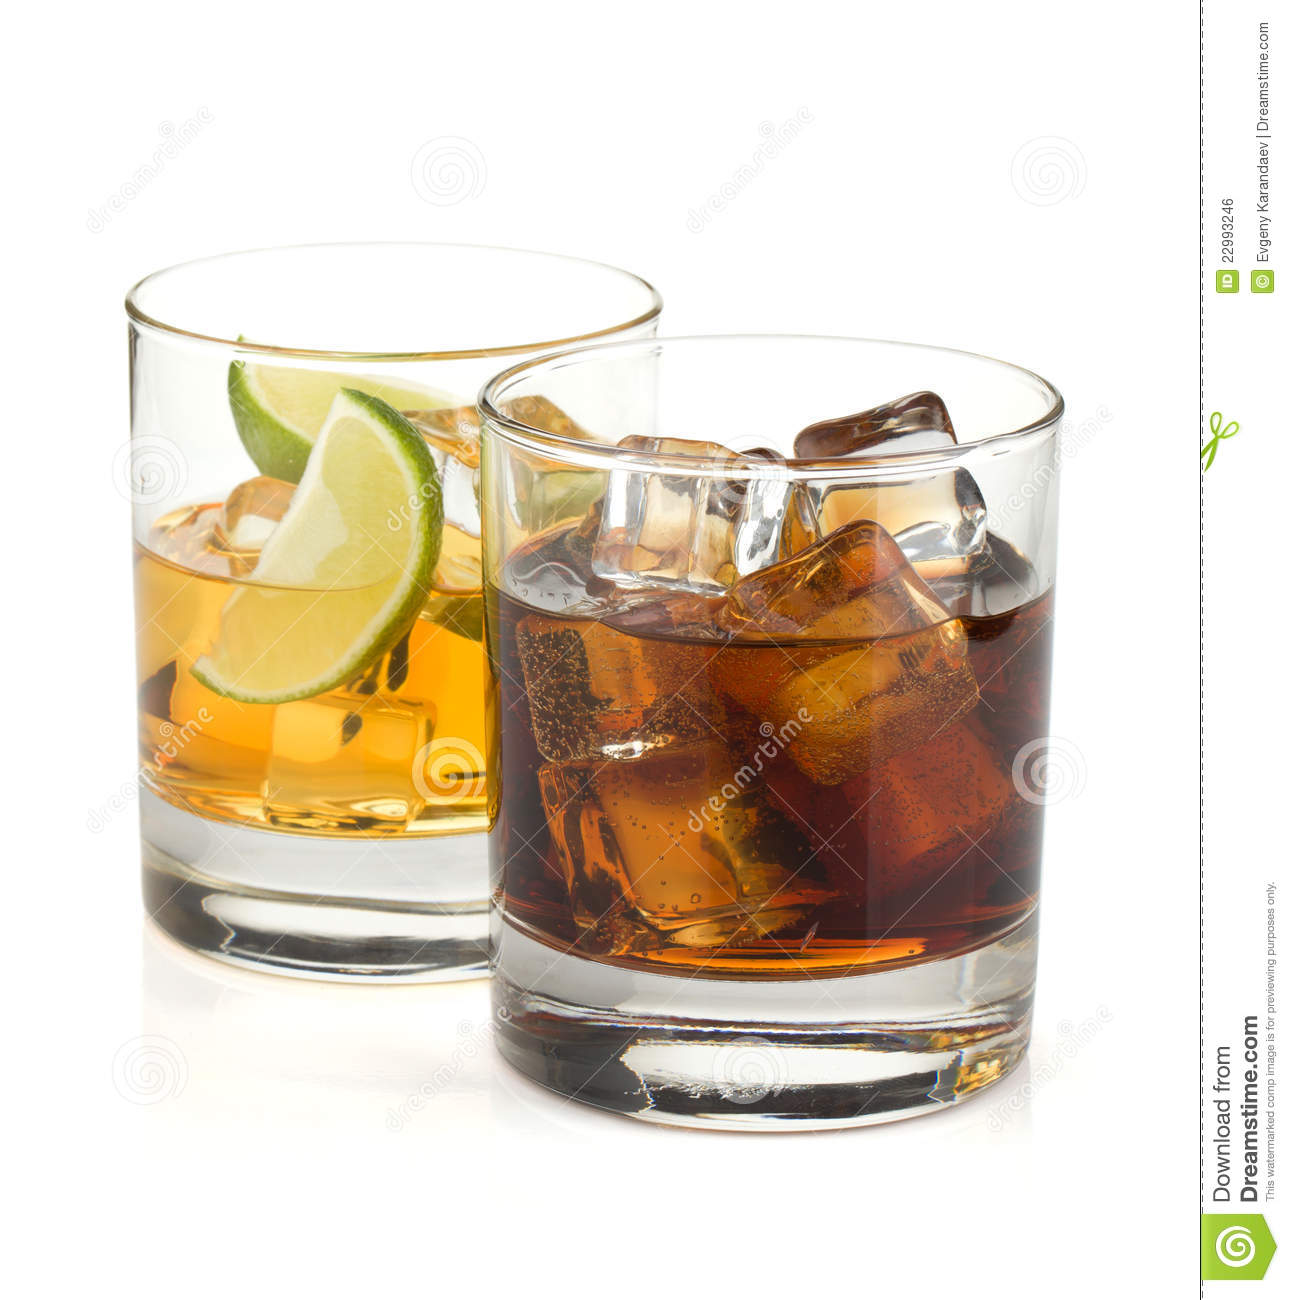 Whiskey And Cola Cocktails Royalty Free Stock Image - Image: 22993246